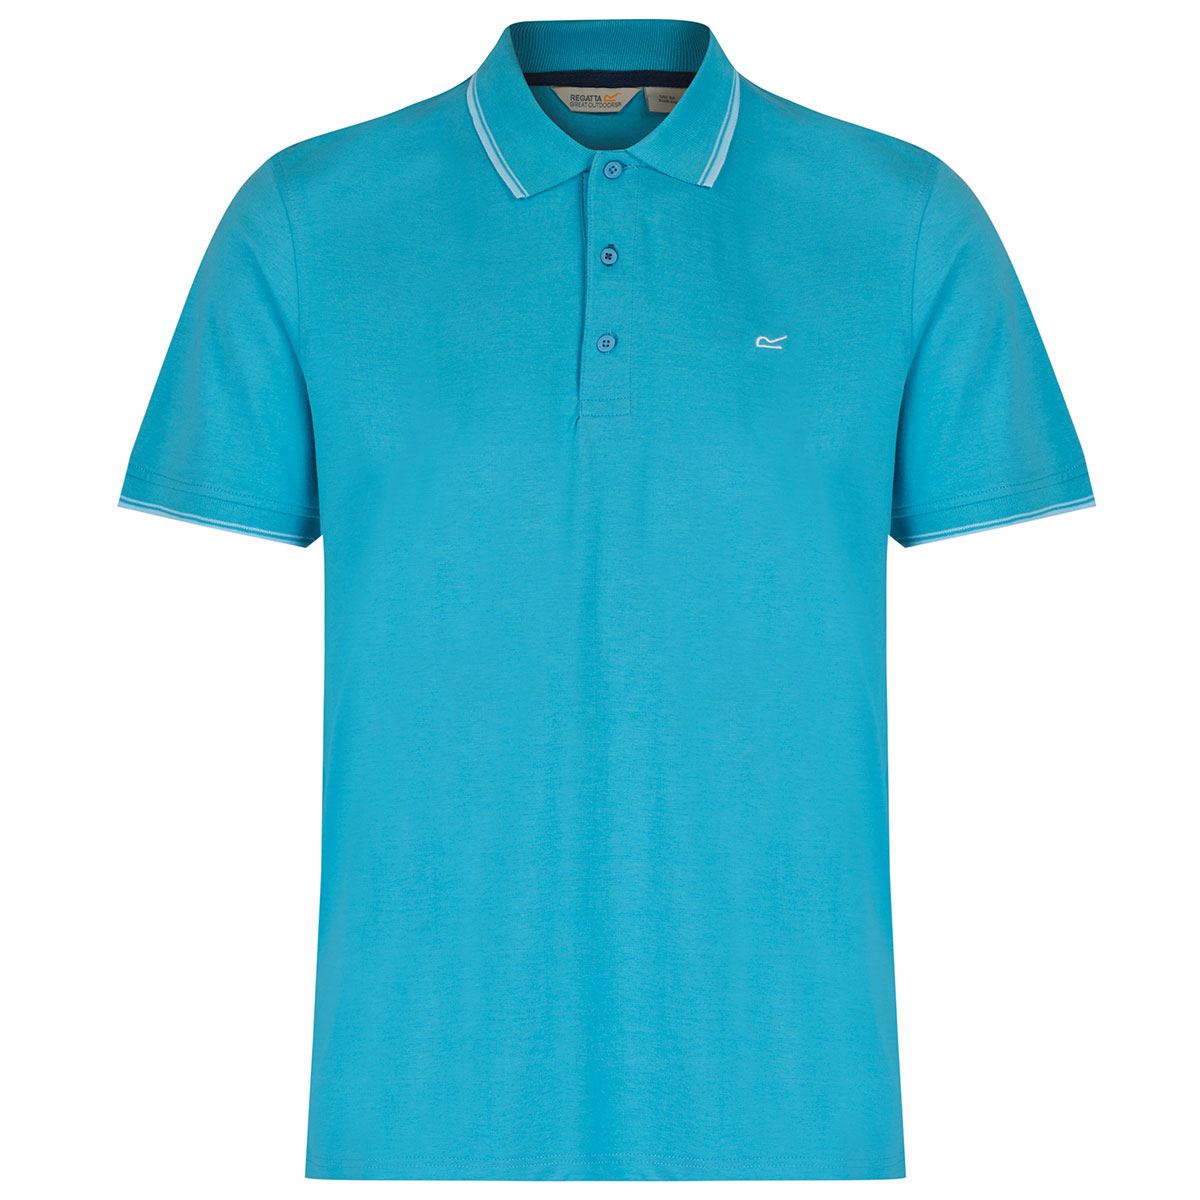 Regatta 2017 Mens Kaine Coolweave Dry Relaxed Fit Polo ...